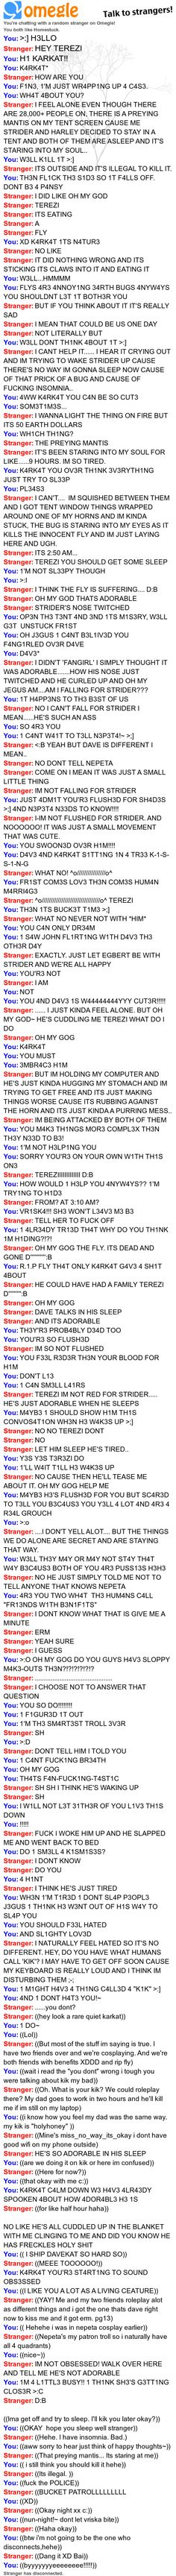 Omegle chat log. I love this stranger x3